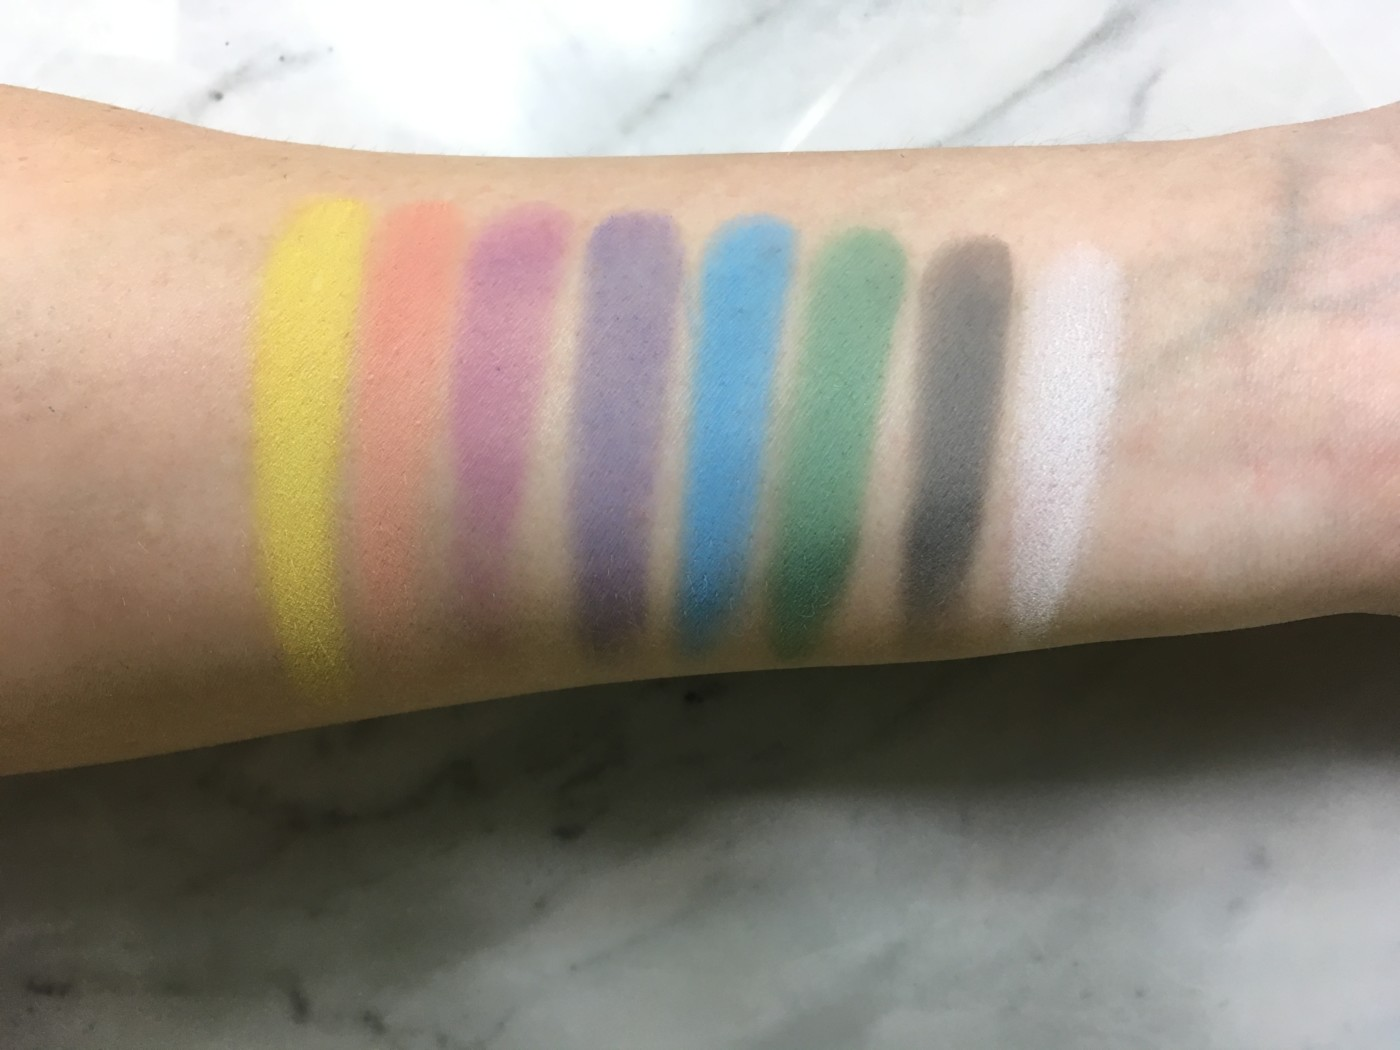 kat von d pastel goth, pastel goth palette, kat von d pastel goth swatches, pastel eyeshadow, pastel eyeshadow palette, how to wear pastel eyeshadow, eyeshadow trends spring 2017, new eyeshadow looks, beauty trends spring 2017, kat von d pastel goth review